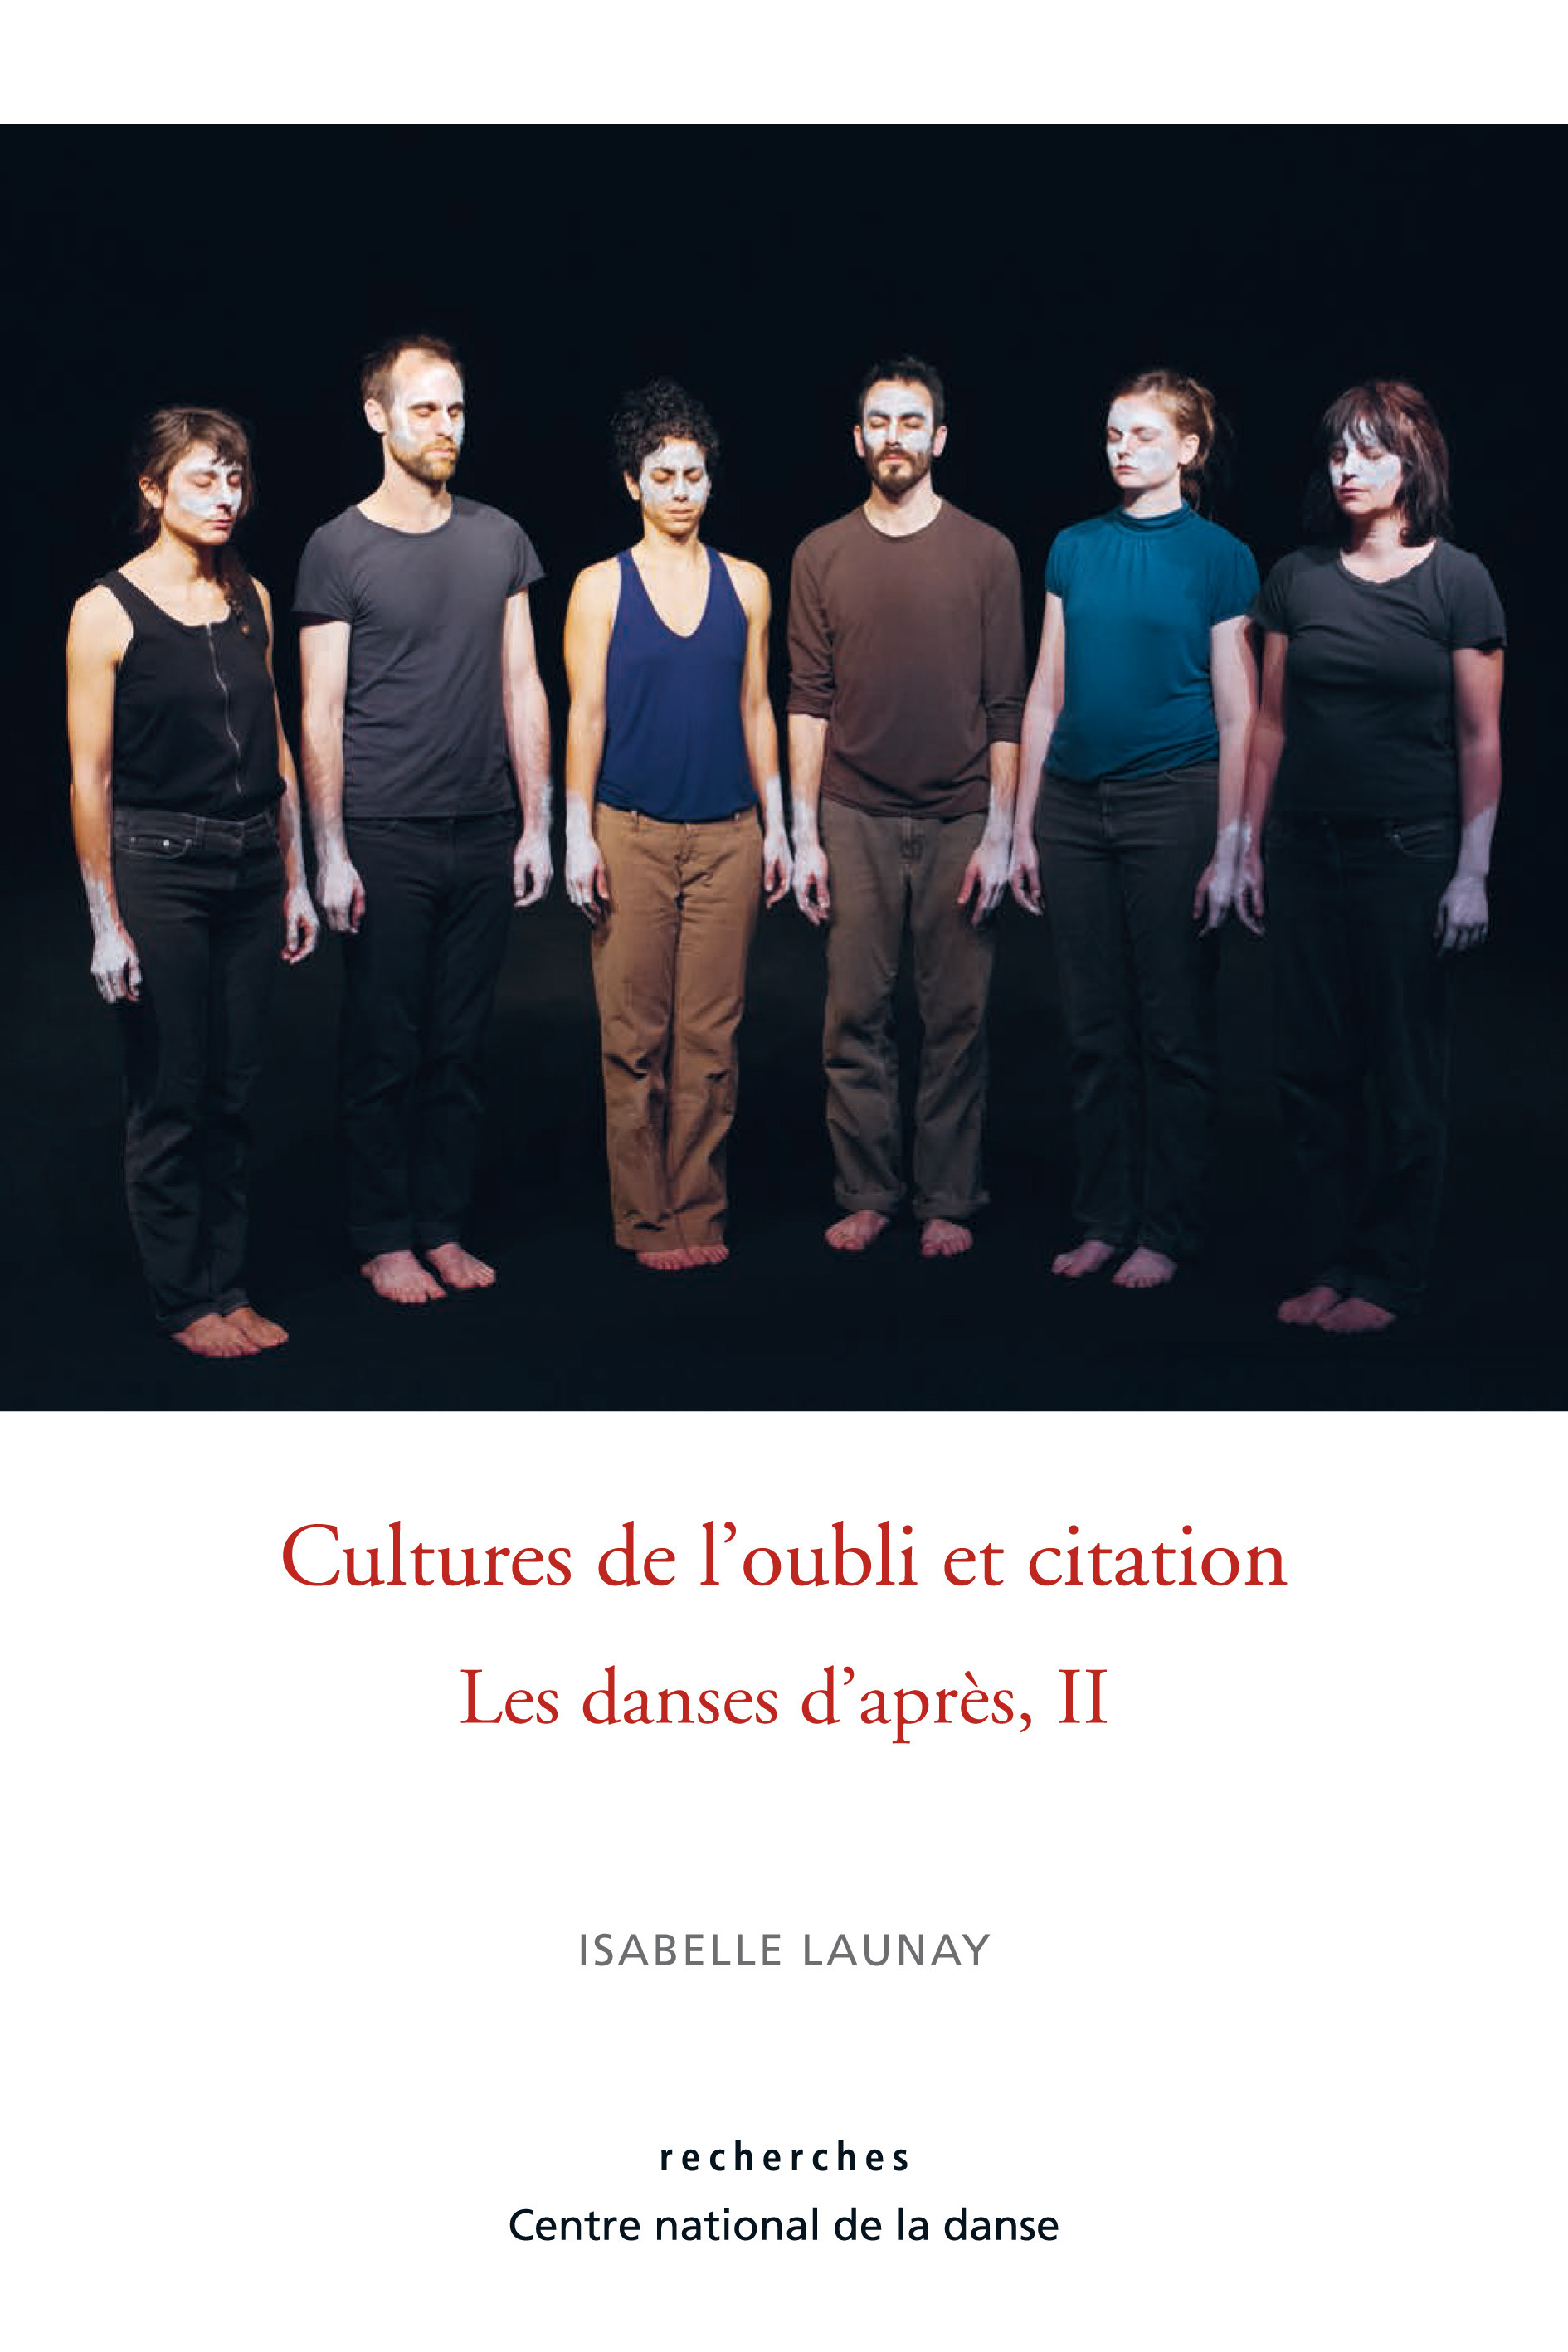 Cultures de l'oubli et citation